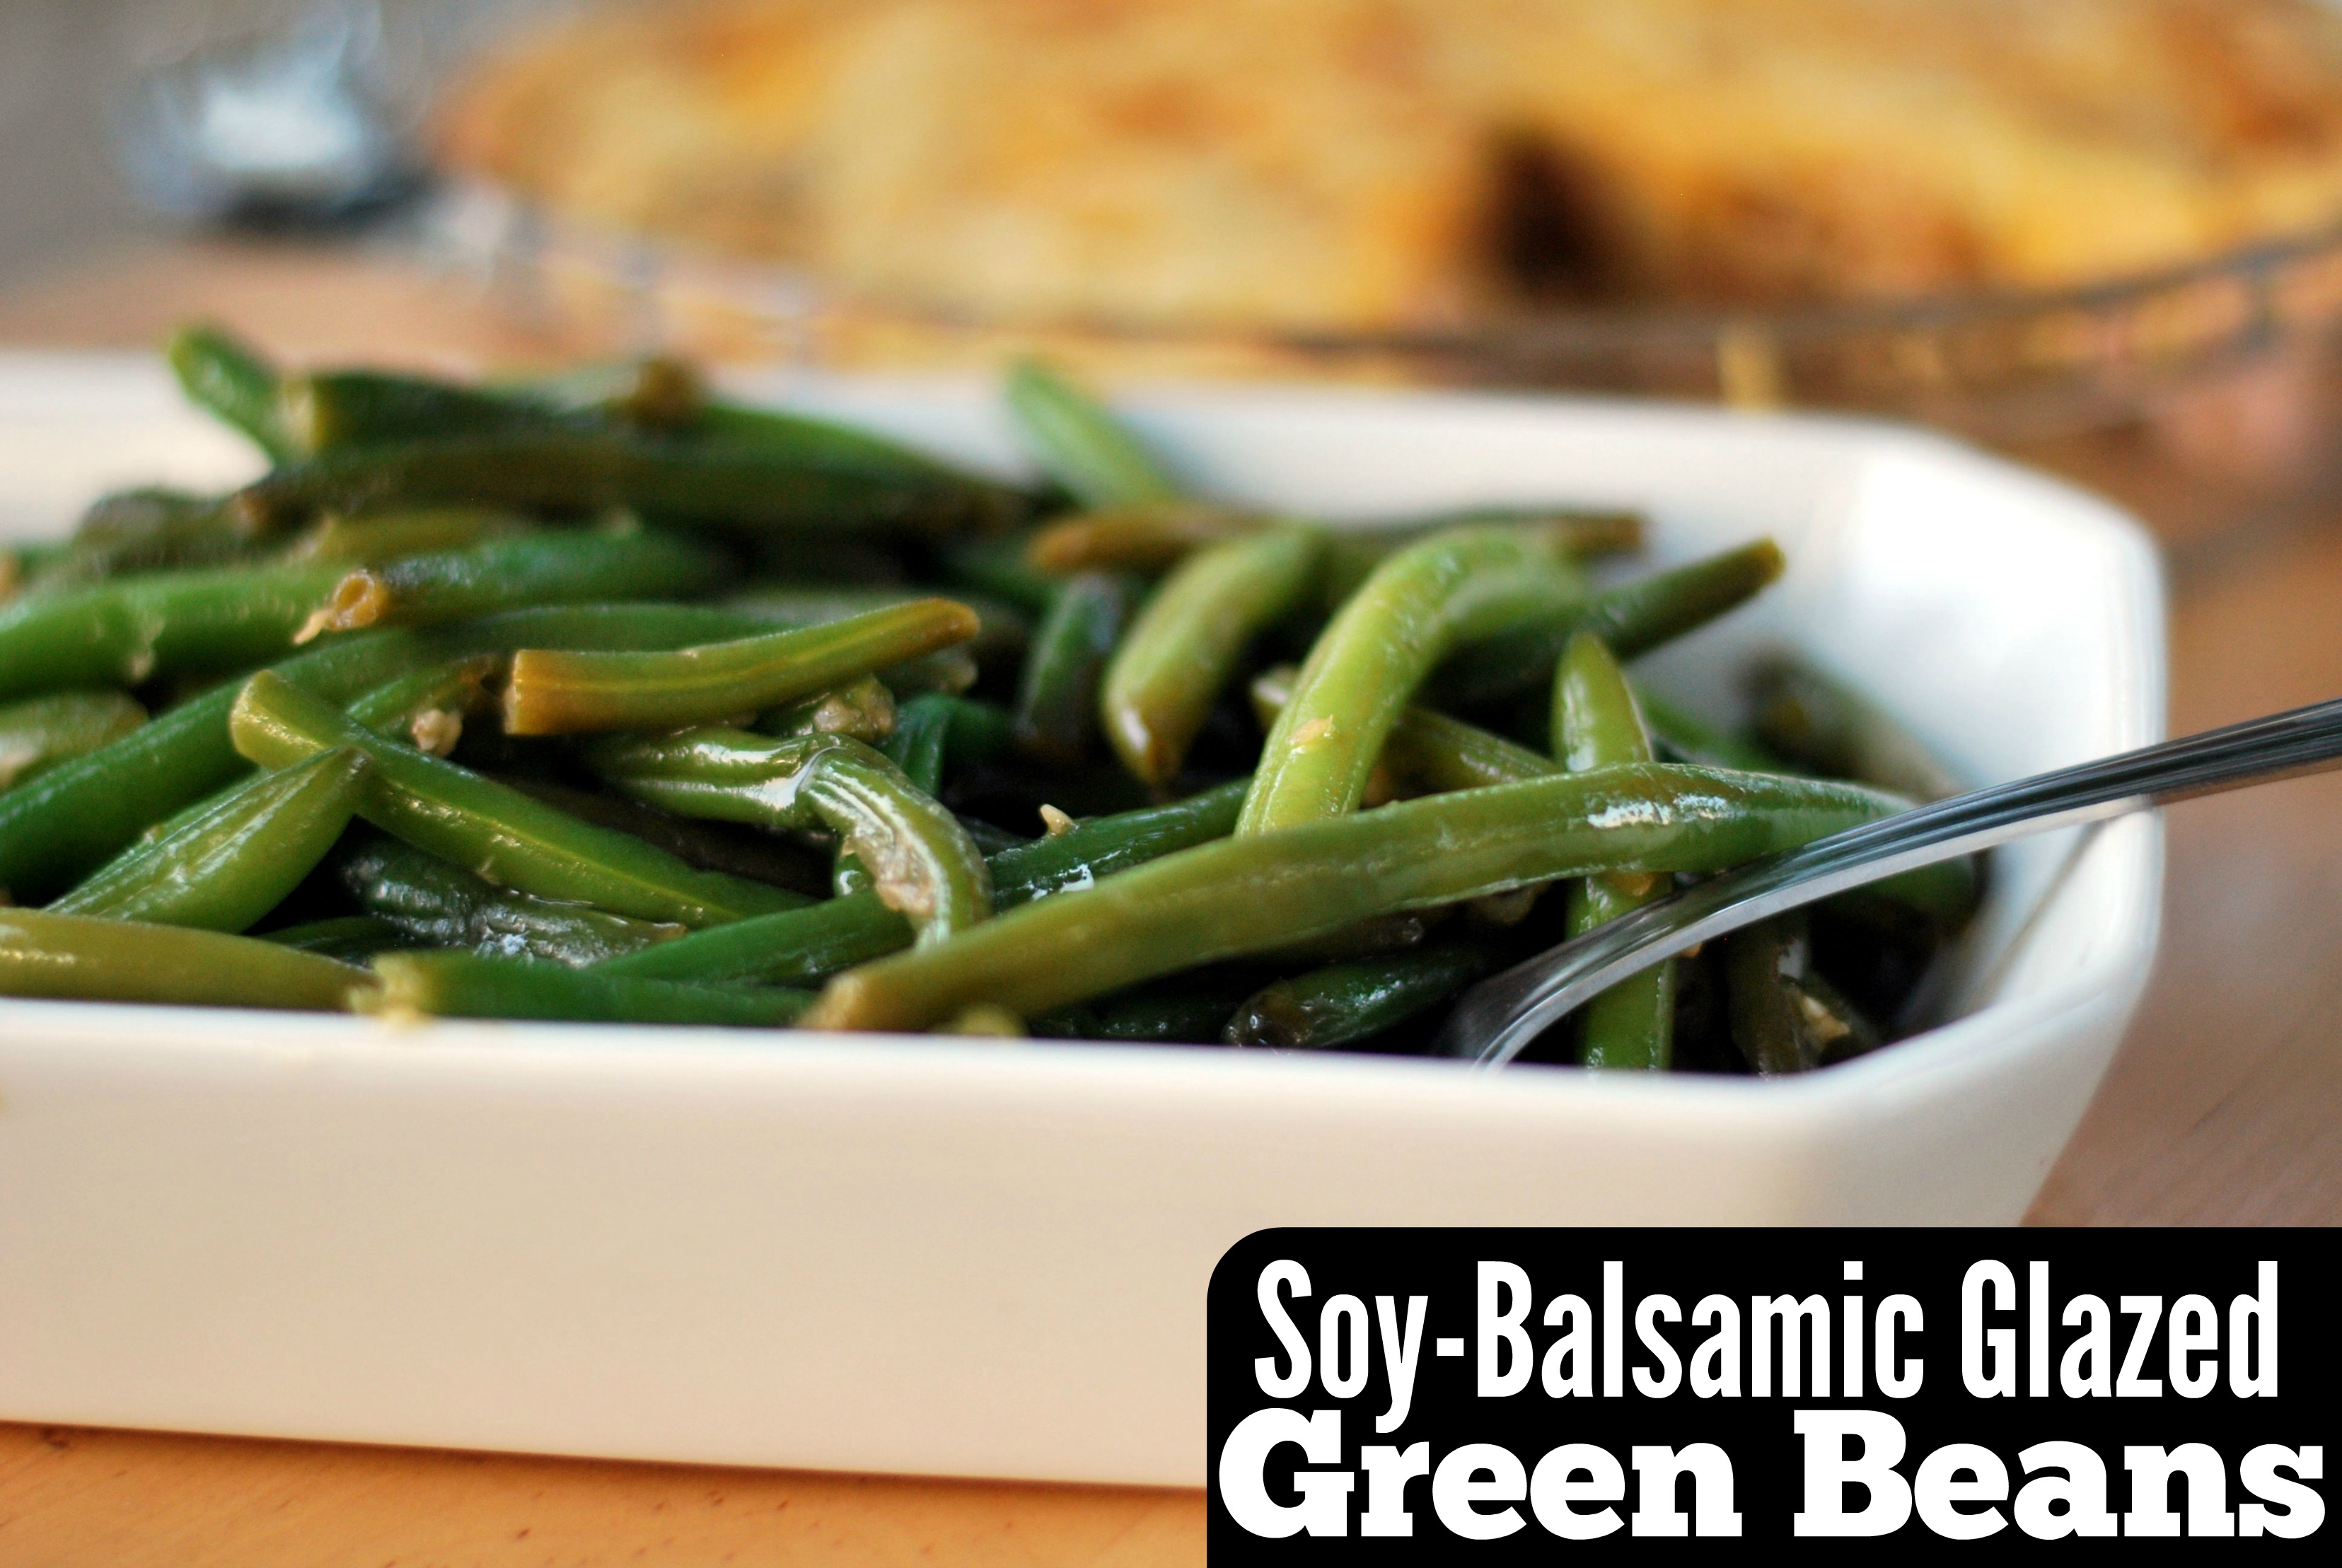 Soy-Balsamic Glazed Green Beans